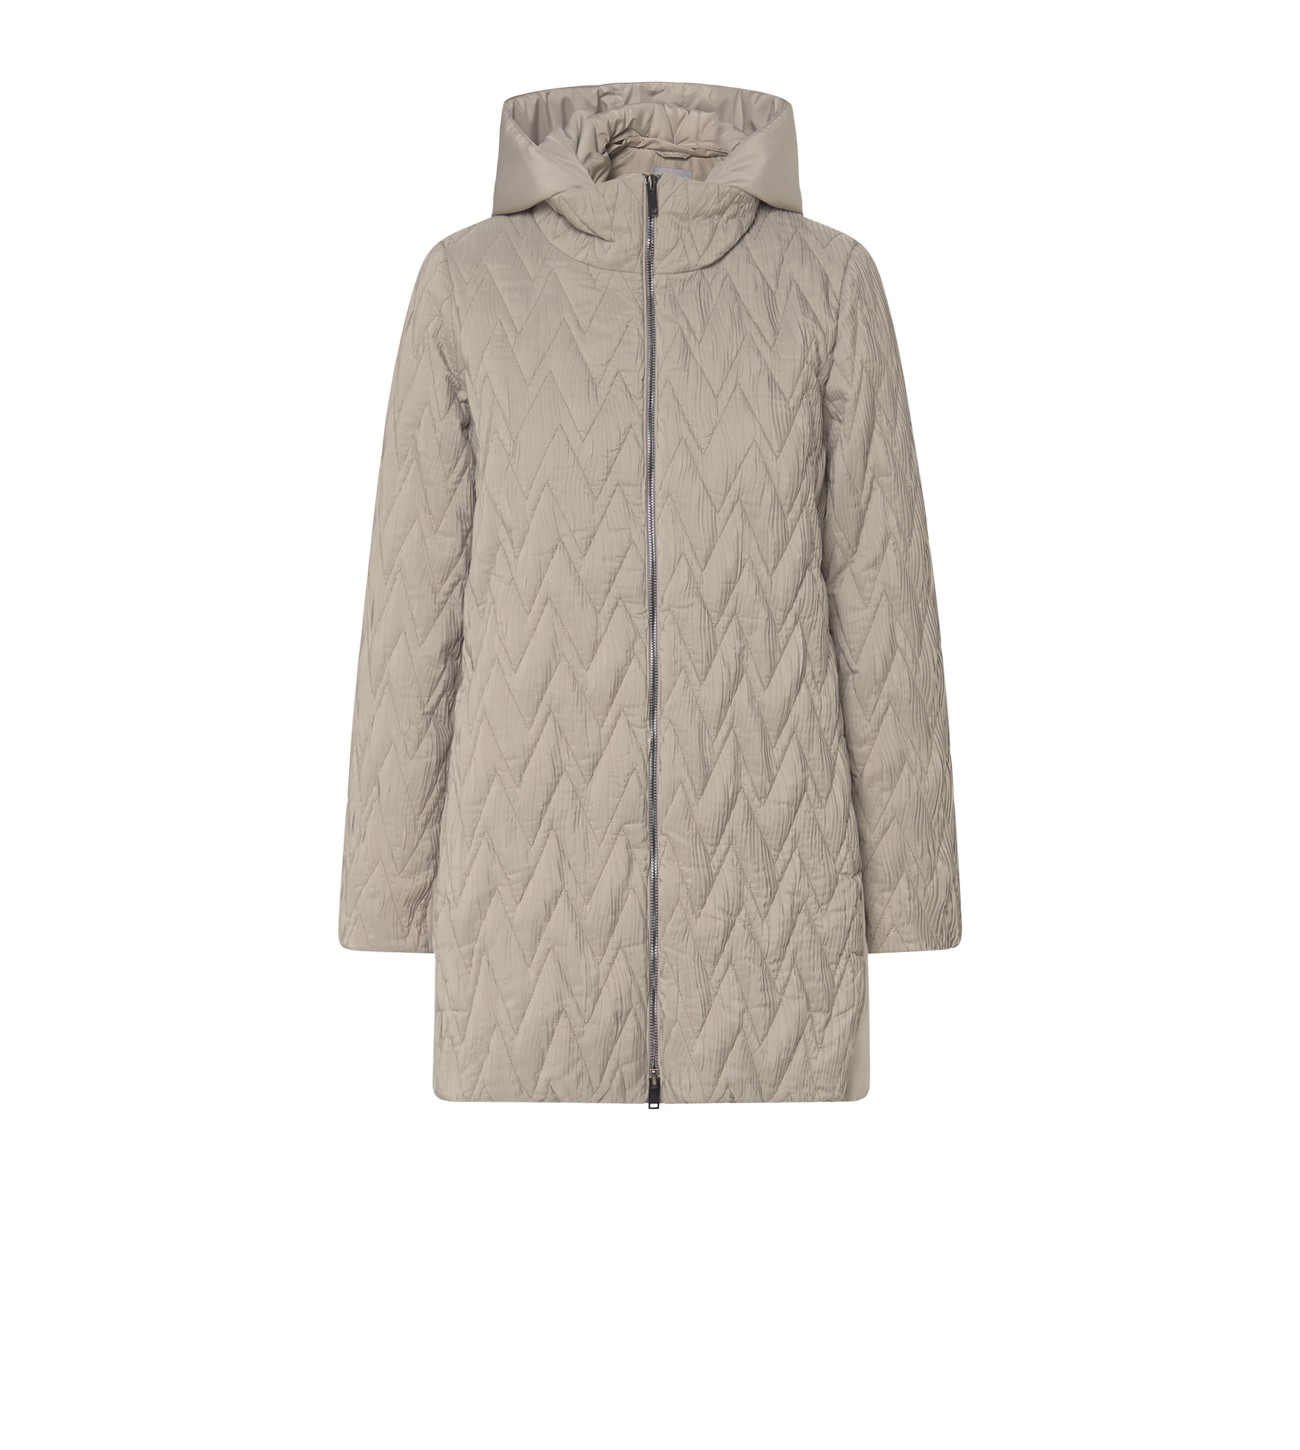 MARELLA_PLAIN_AND_GEOMETRIC_QUILTED_PARKA_WITH_HOOD_MARIONA_FASHION_CLOTHING_WOMAN_SHOP_ONLINE_RAVENNA